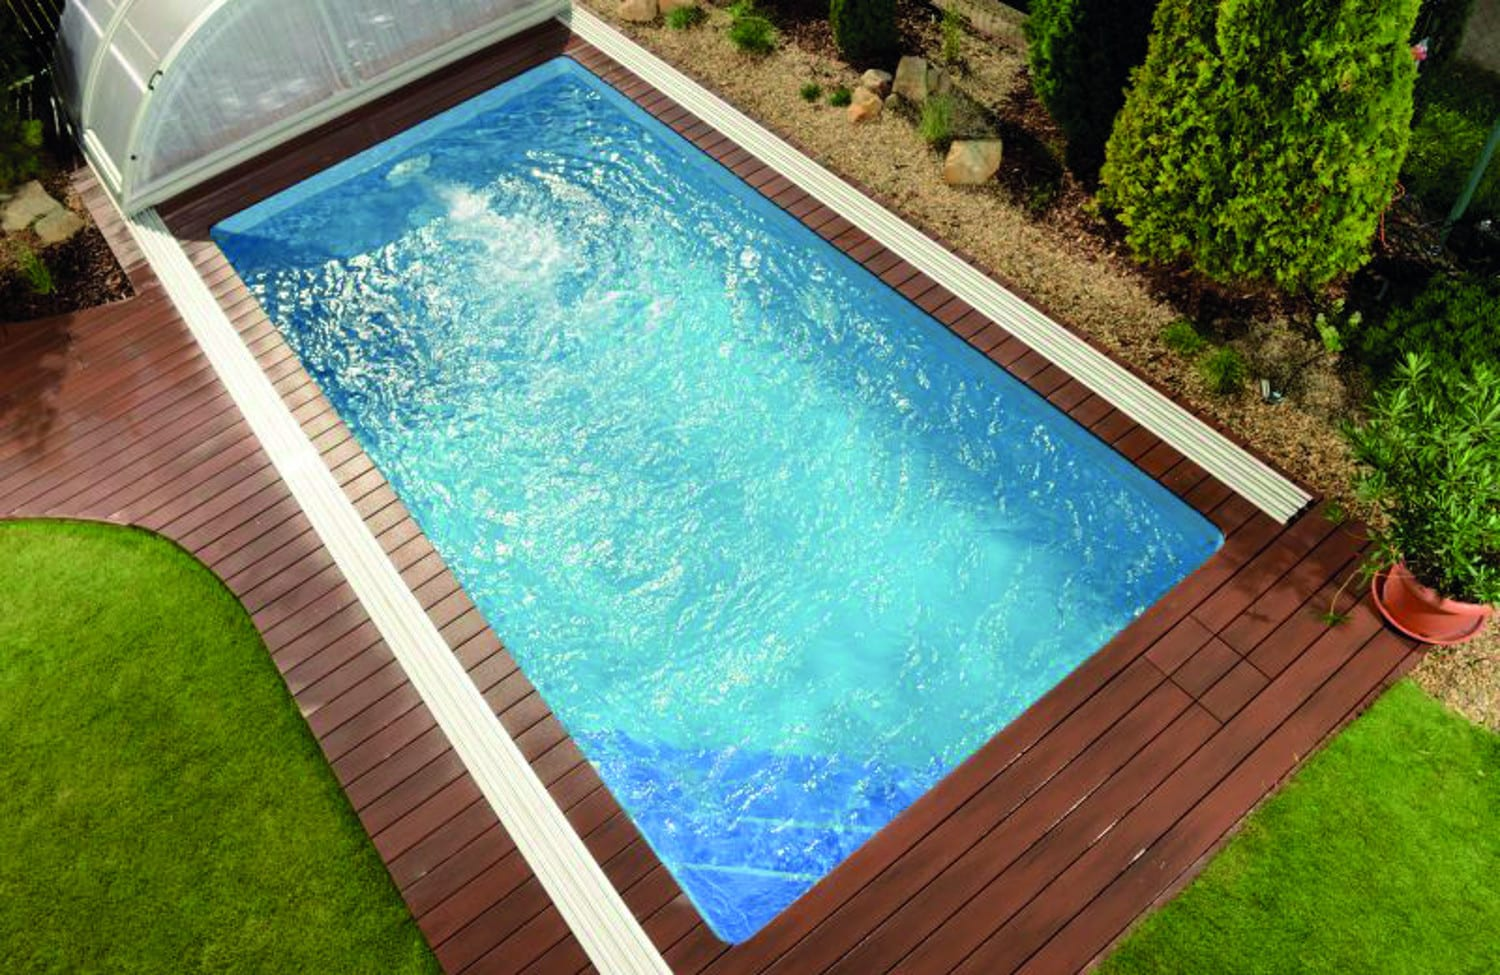 Pegas 6.20m X 3.10m X 1.40m One Fibreglass Pool